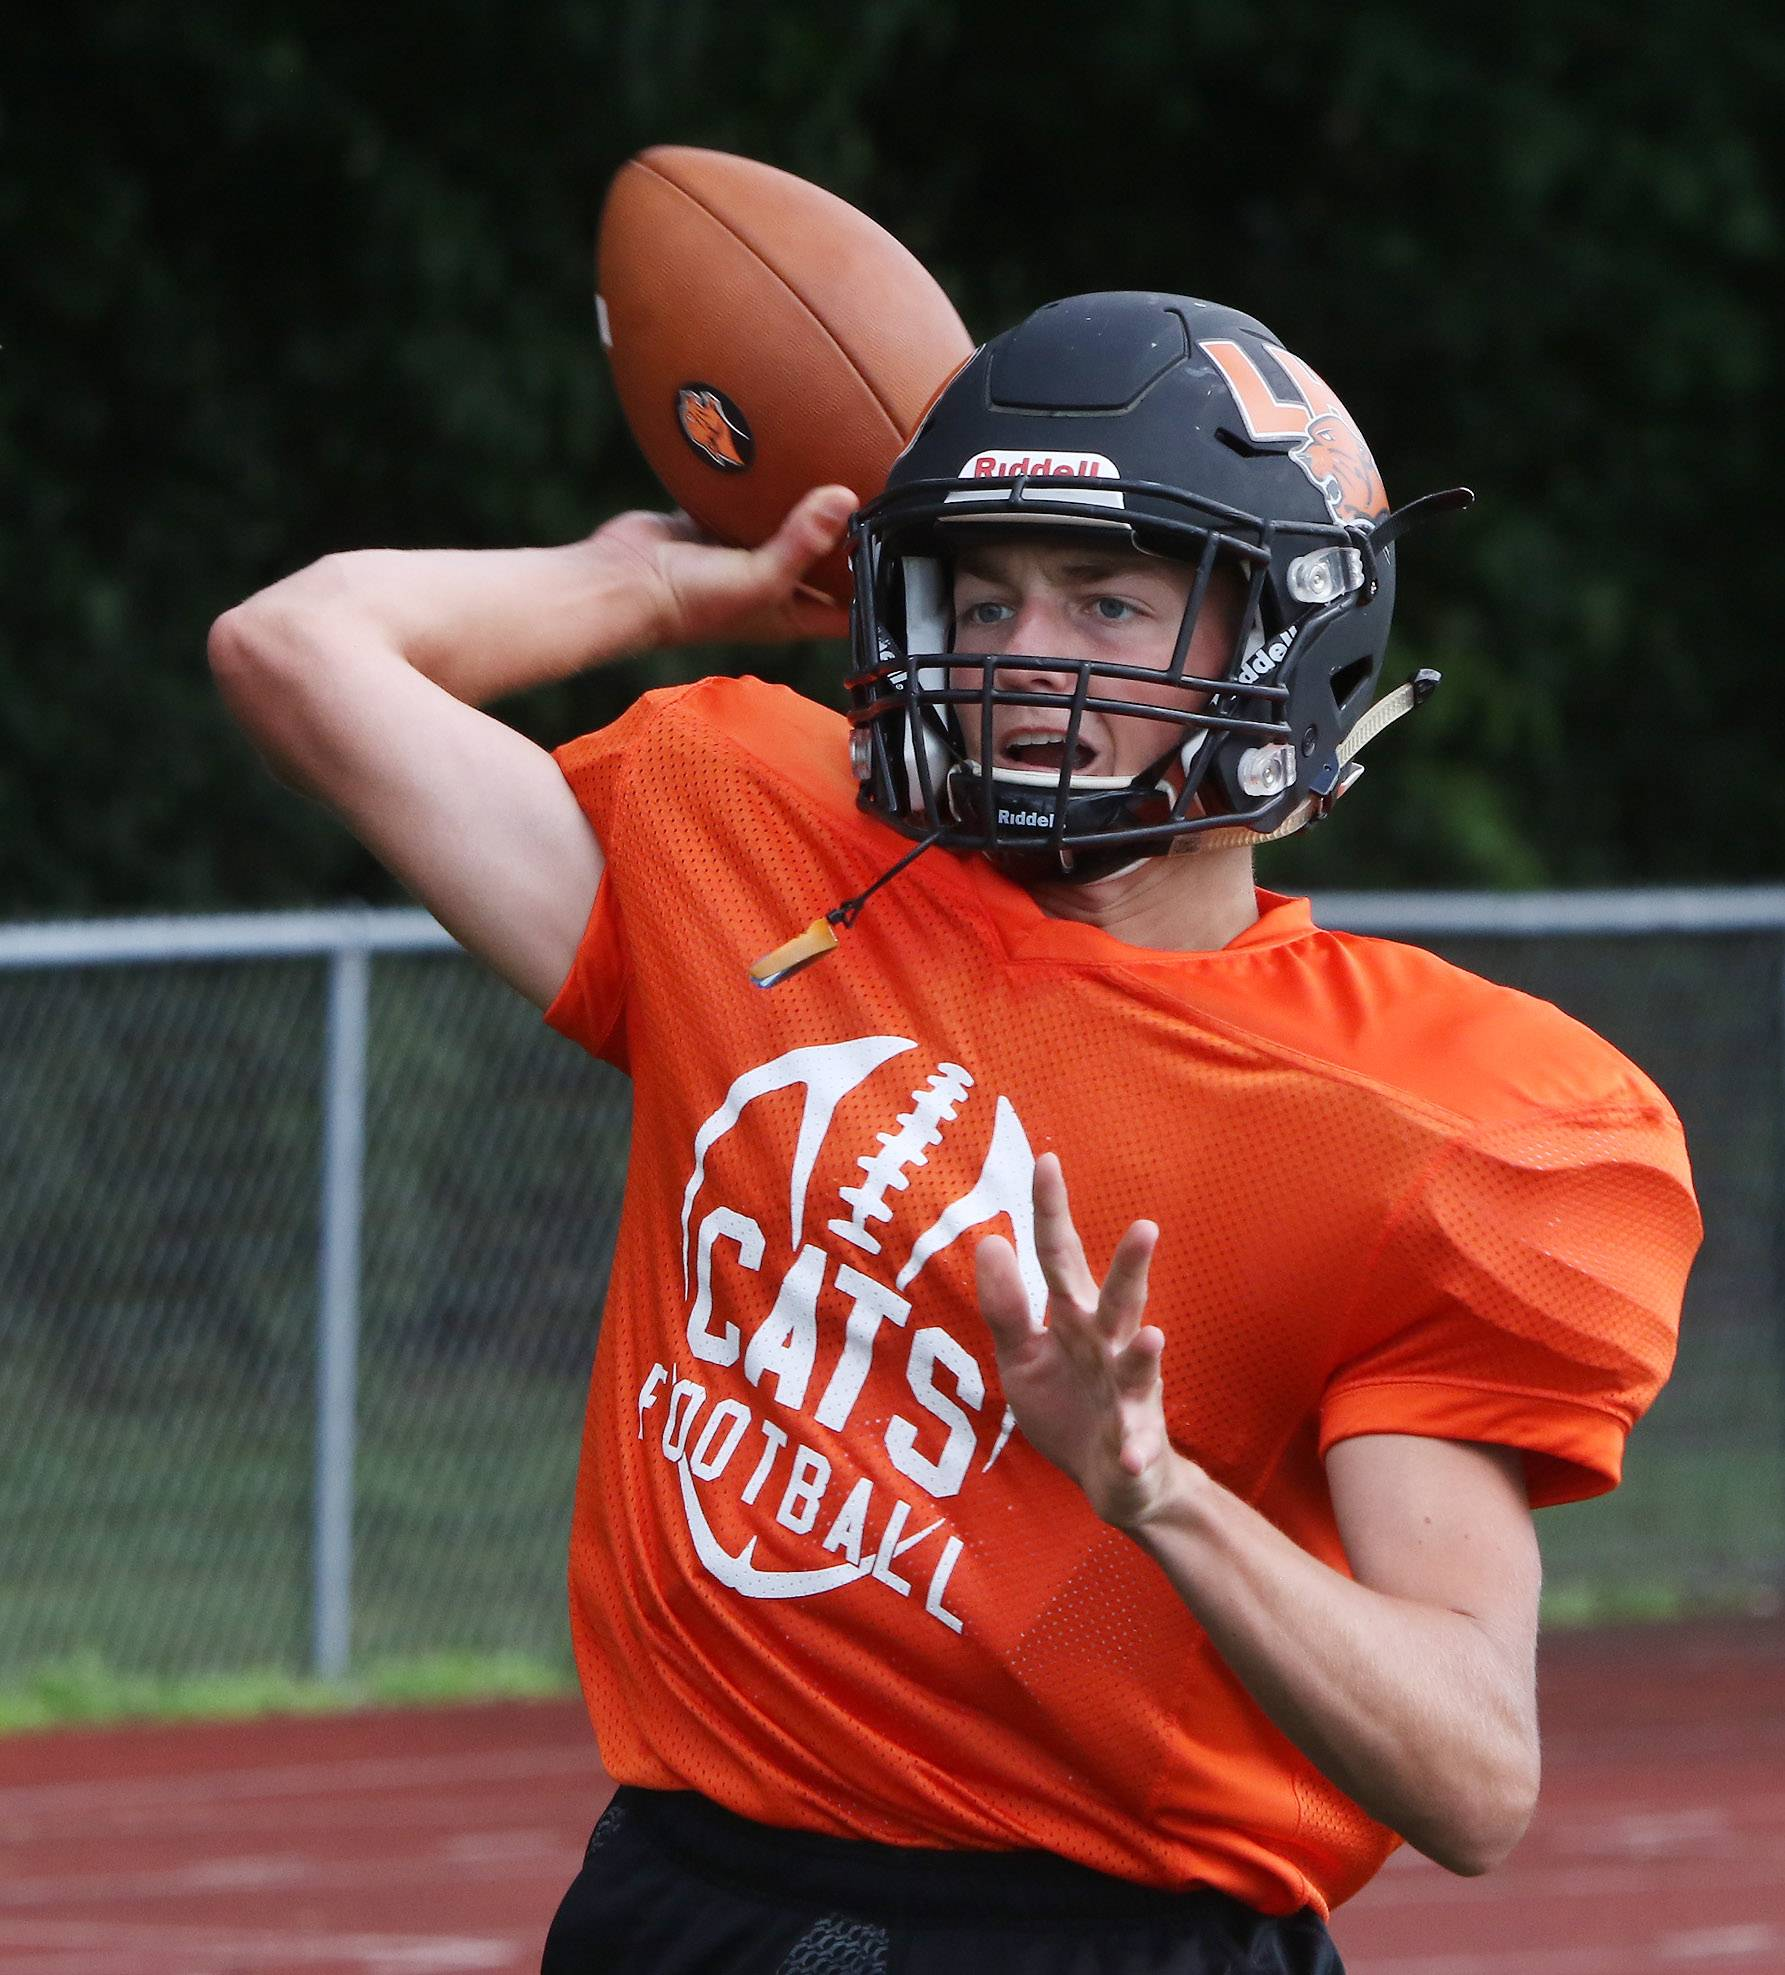 Quarterback Alex Stanulis throws the ball during football practice at Libertyville.